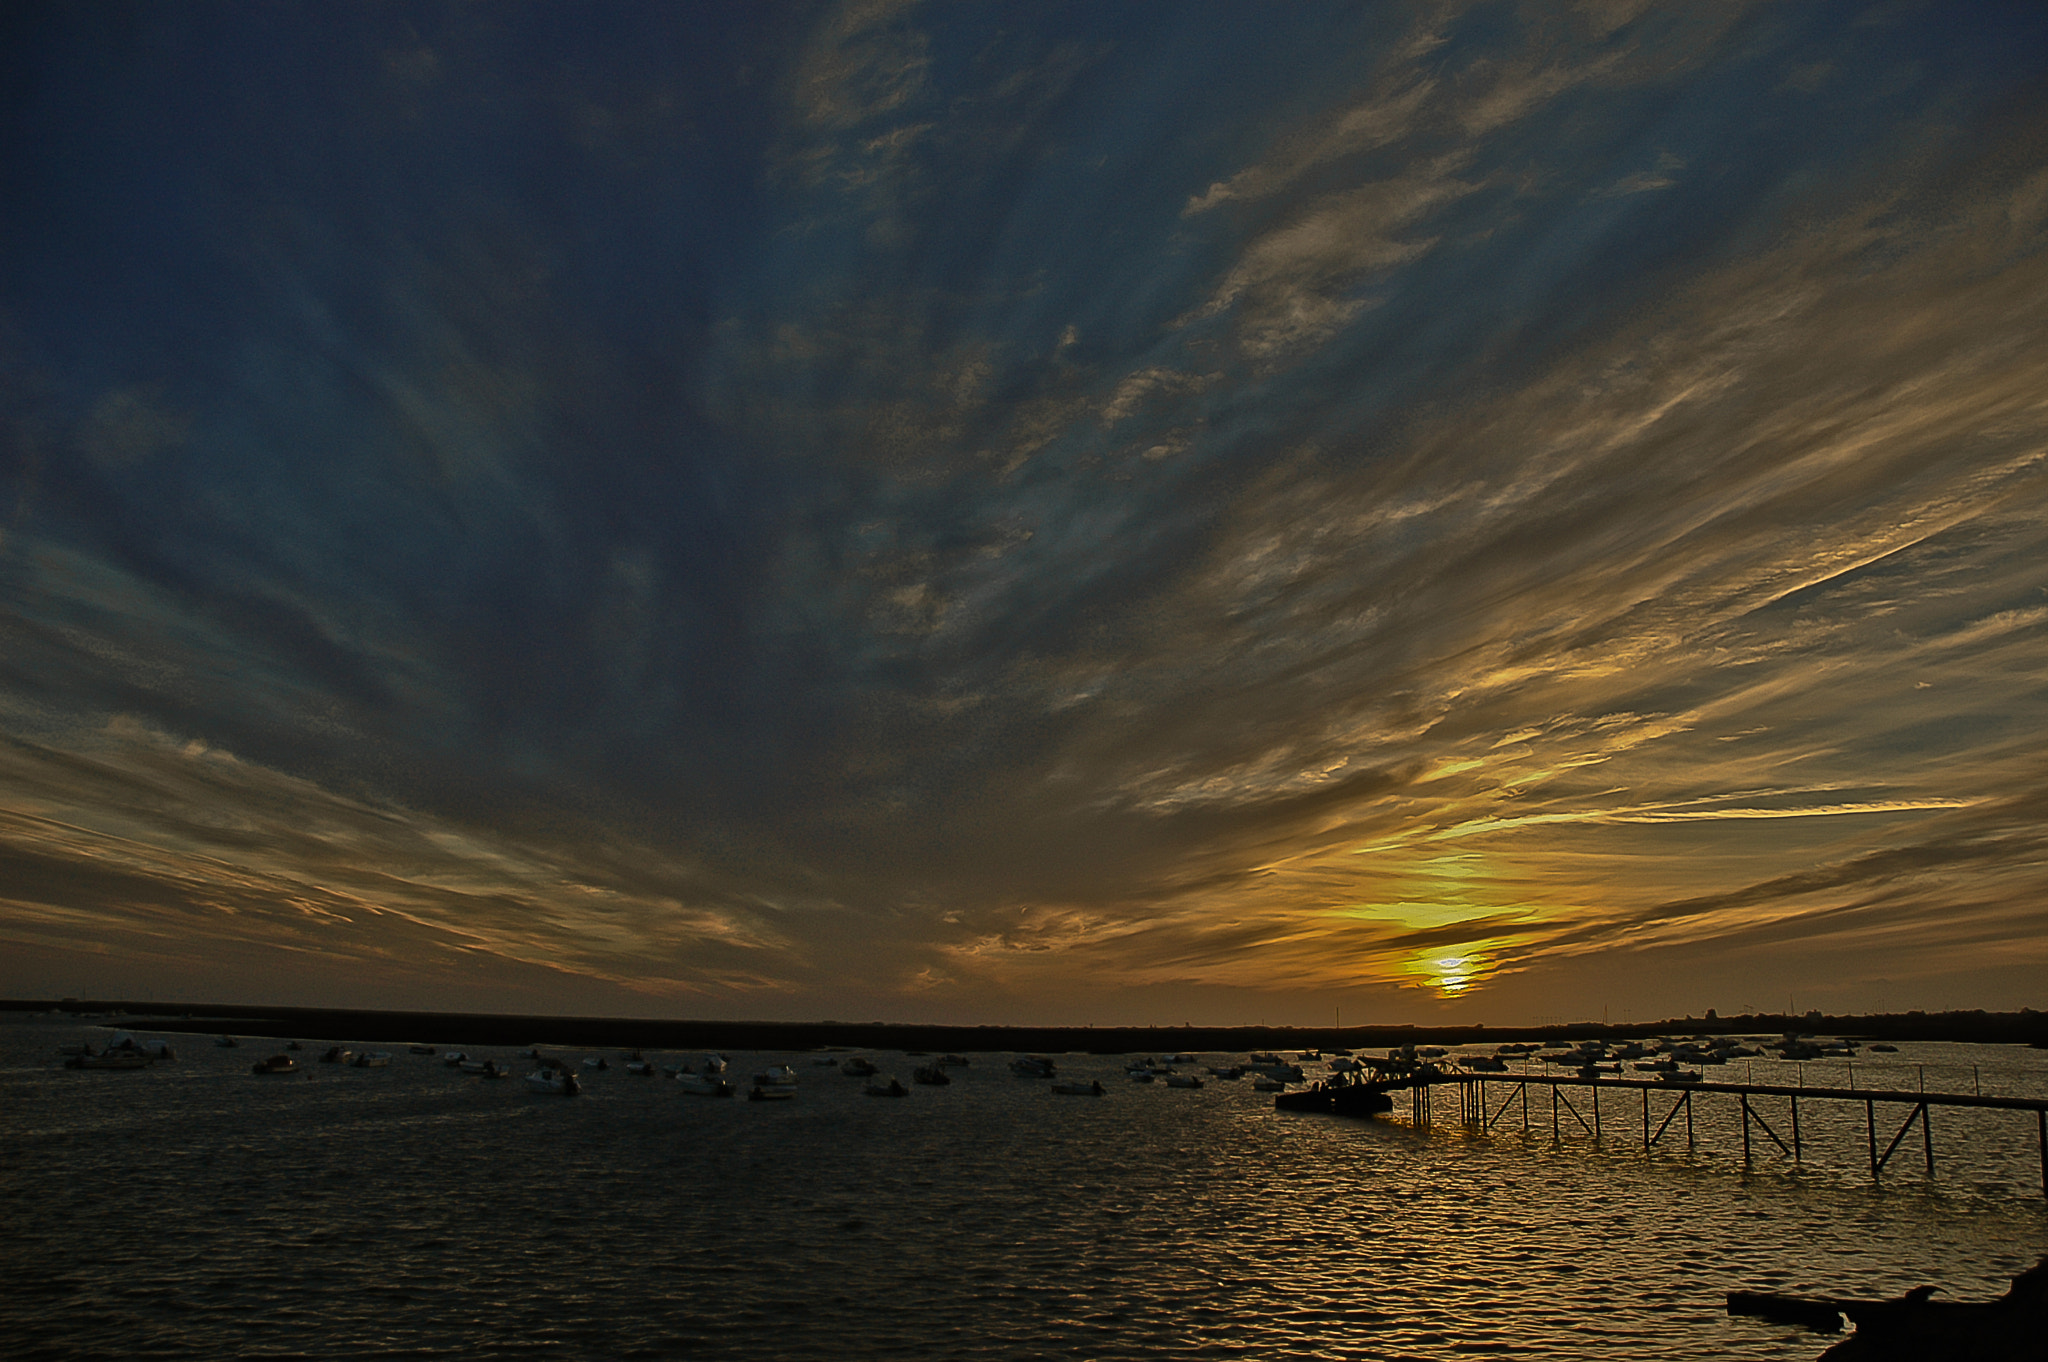 Photograph Sunset on Ria Formosa 2 - Faro by José Covas on 500px